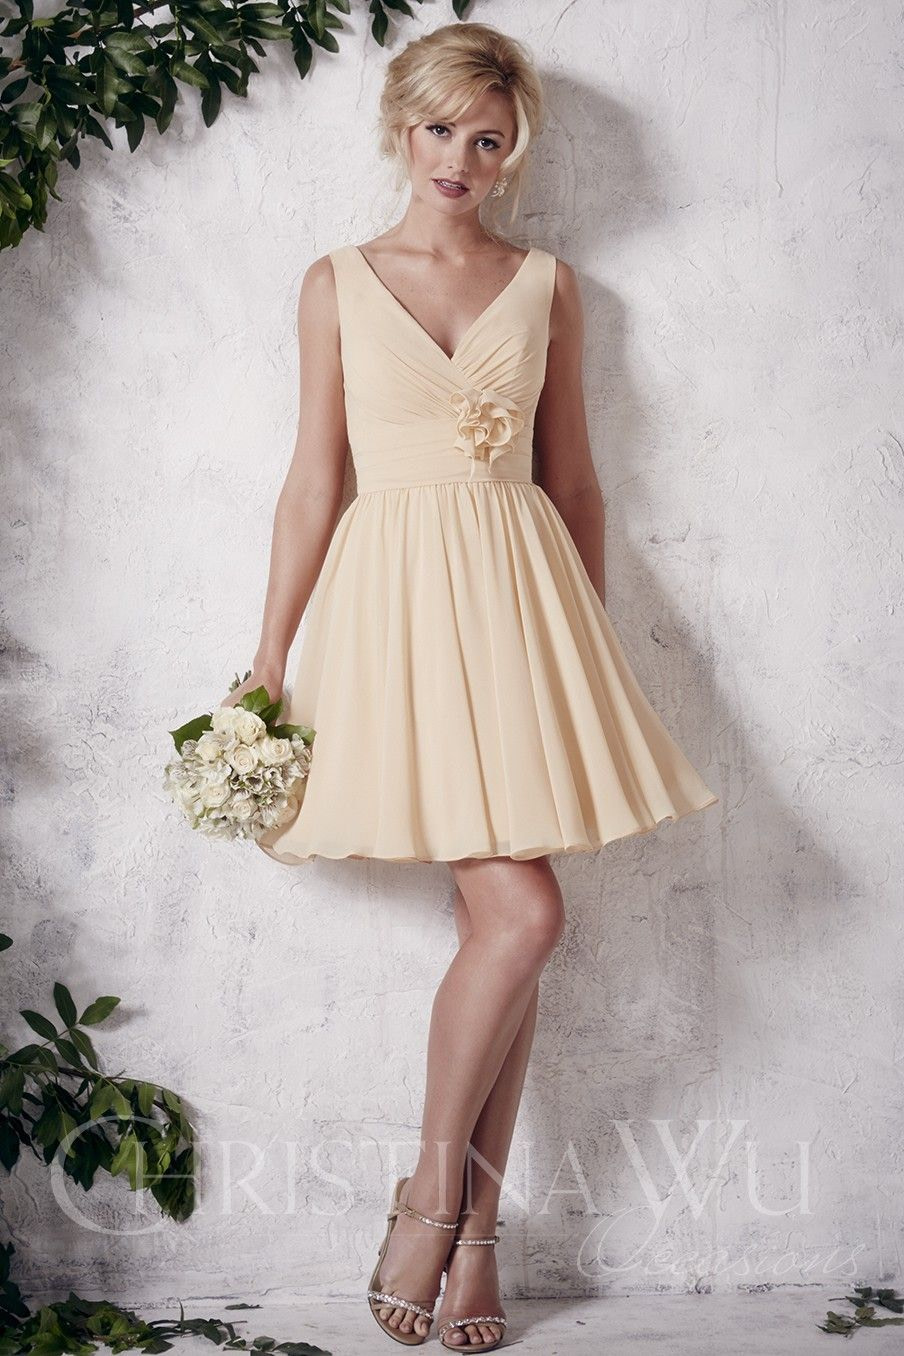 available-at-spotlight-formal-wear-short-chiffon-bridesmaid-dress-with-thick-straps.jpg